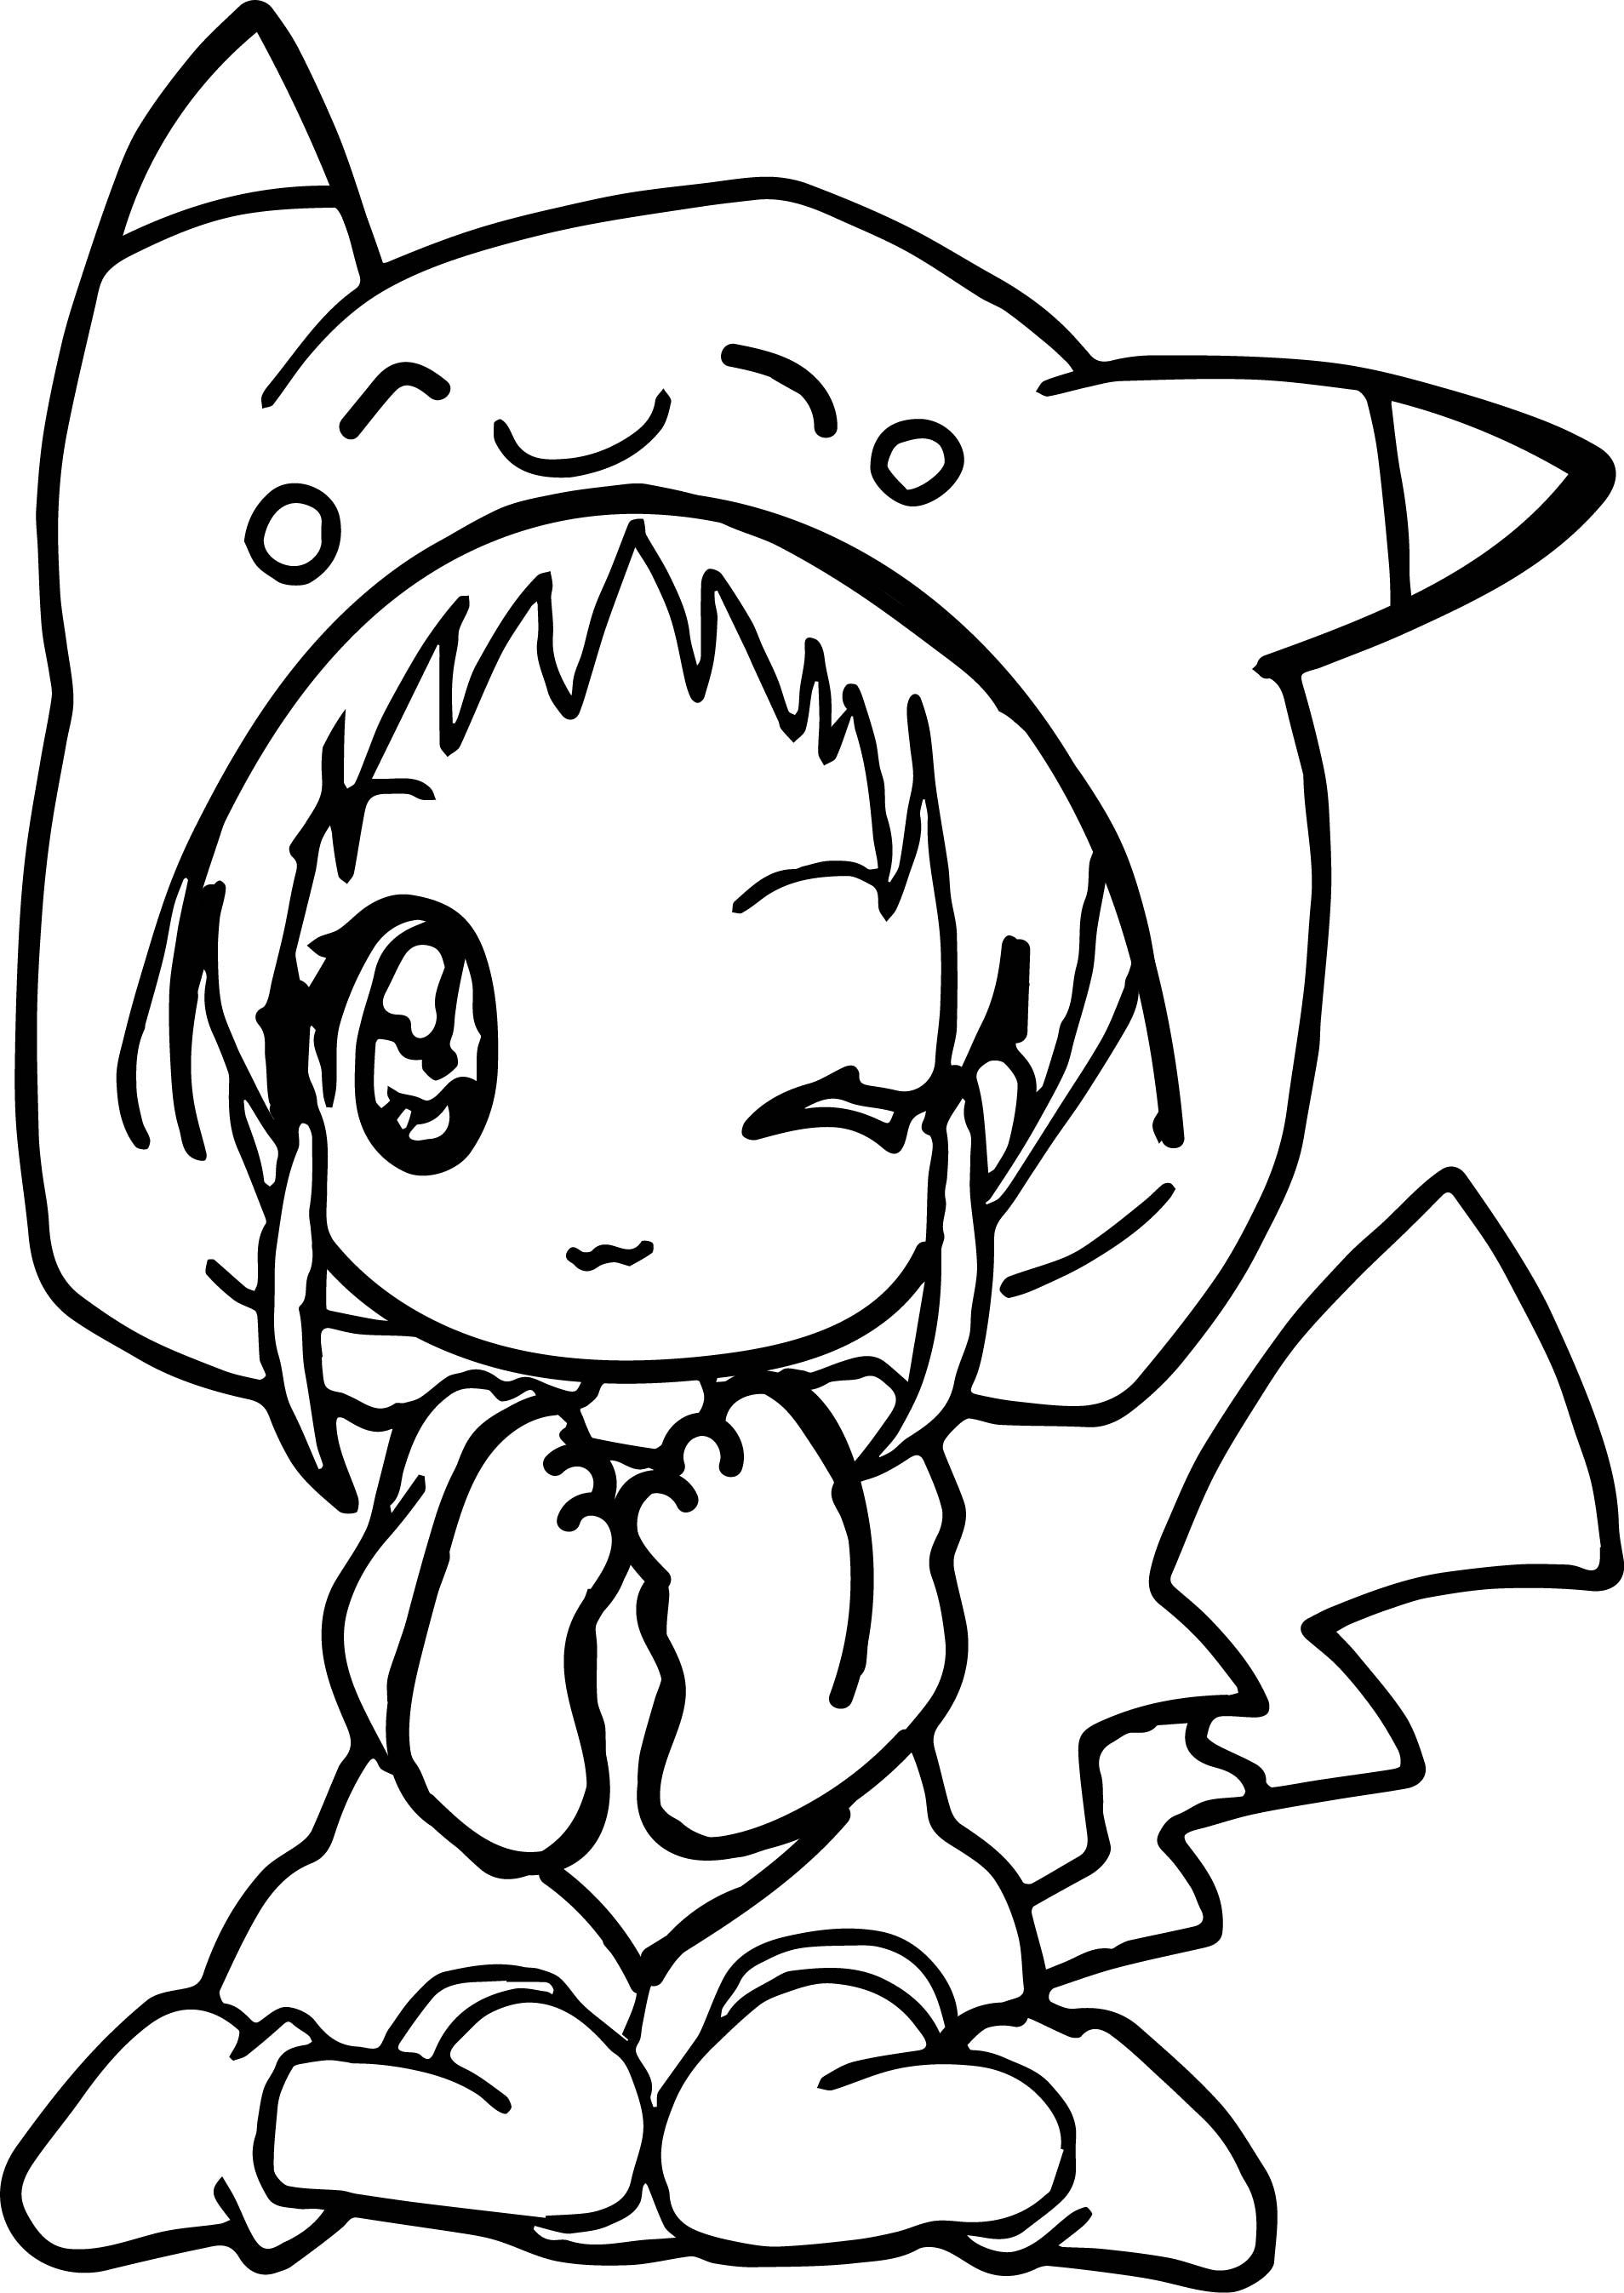 anime coloring pages easy anime coloring page google search chibi coloring pages coloring pages anime easy